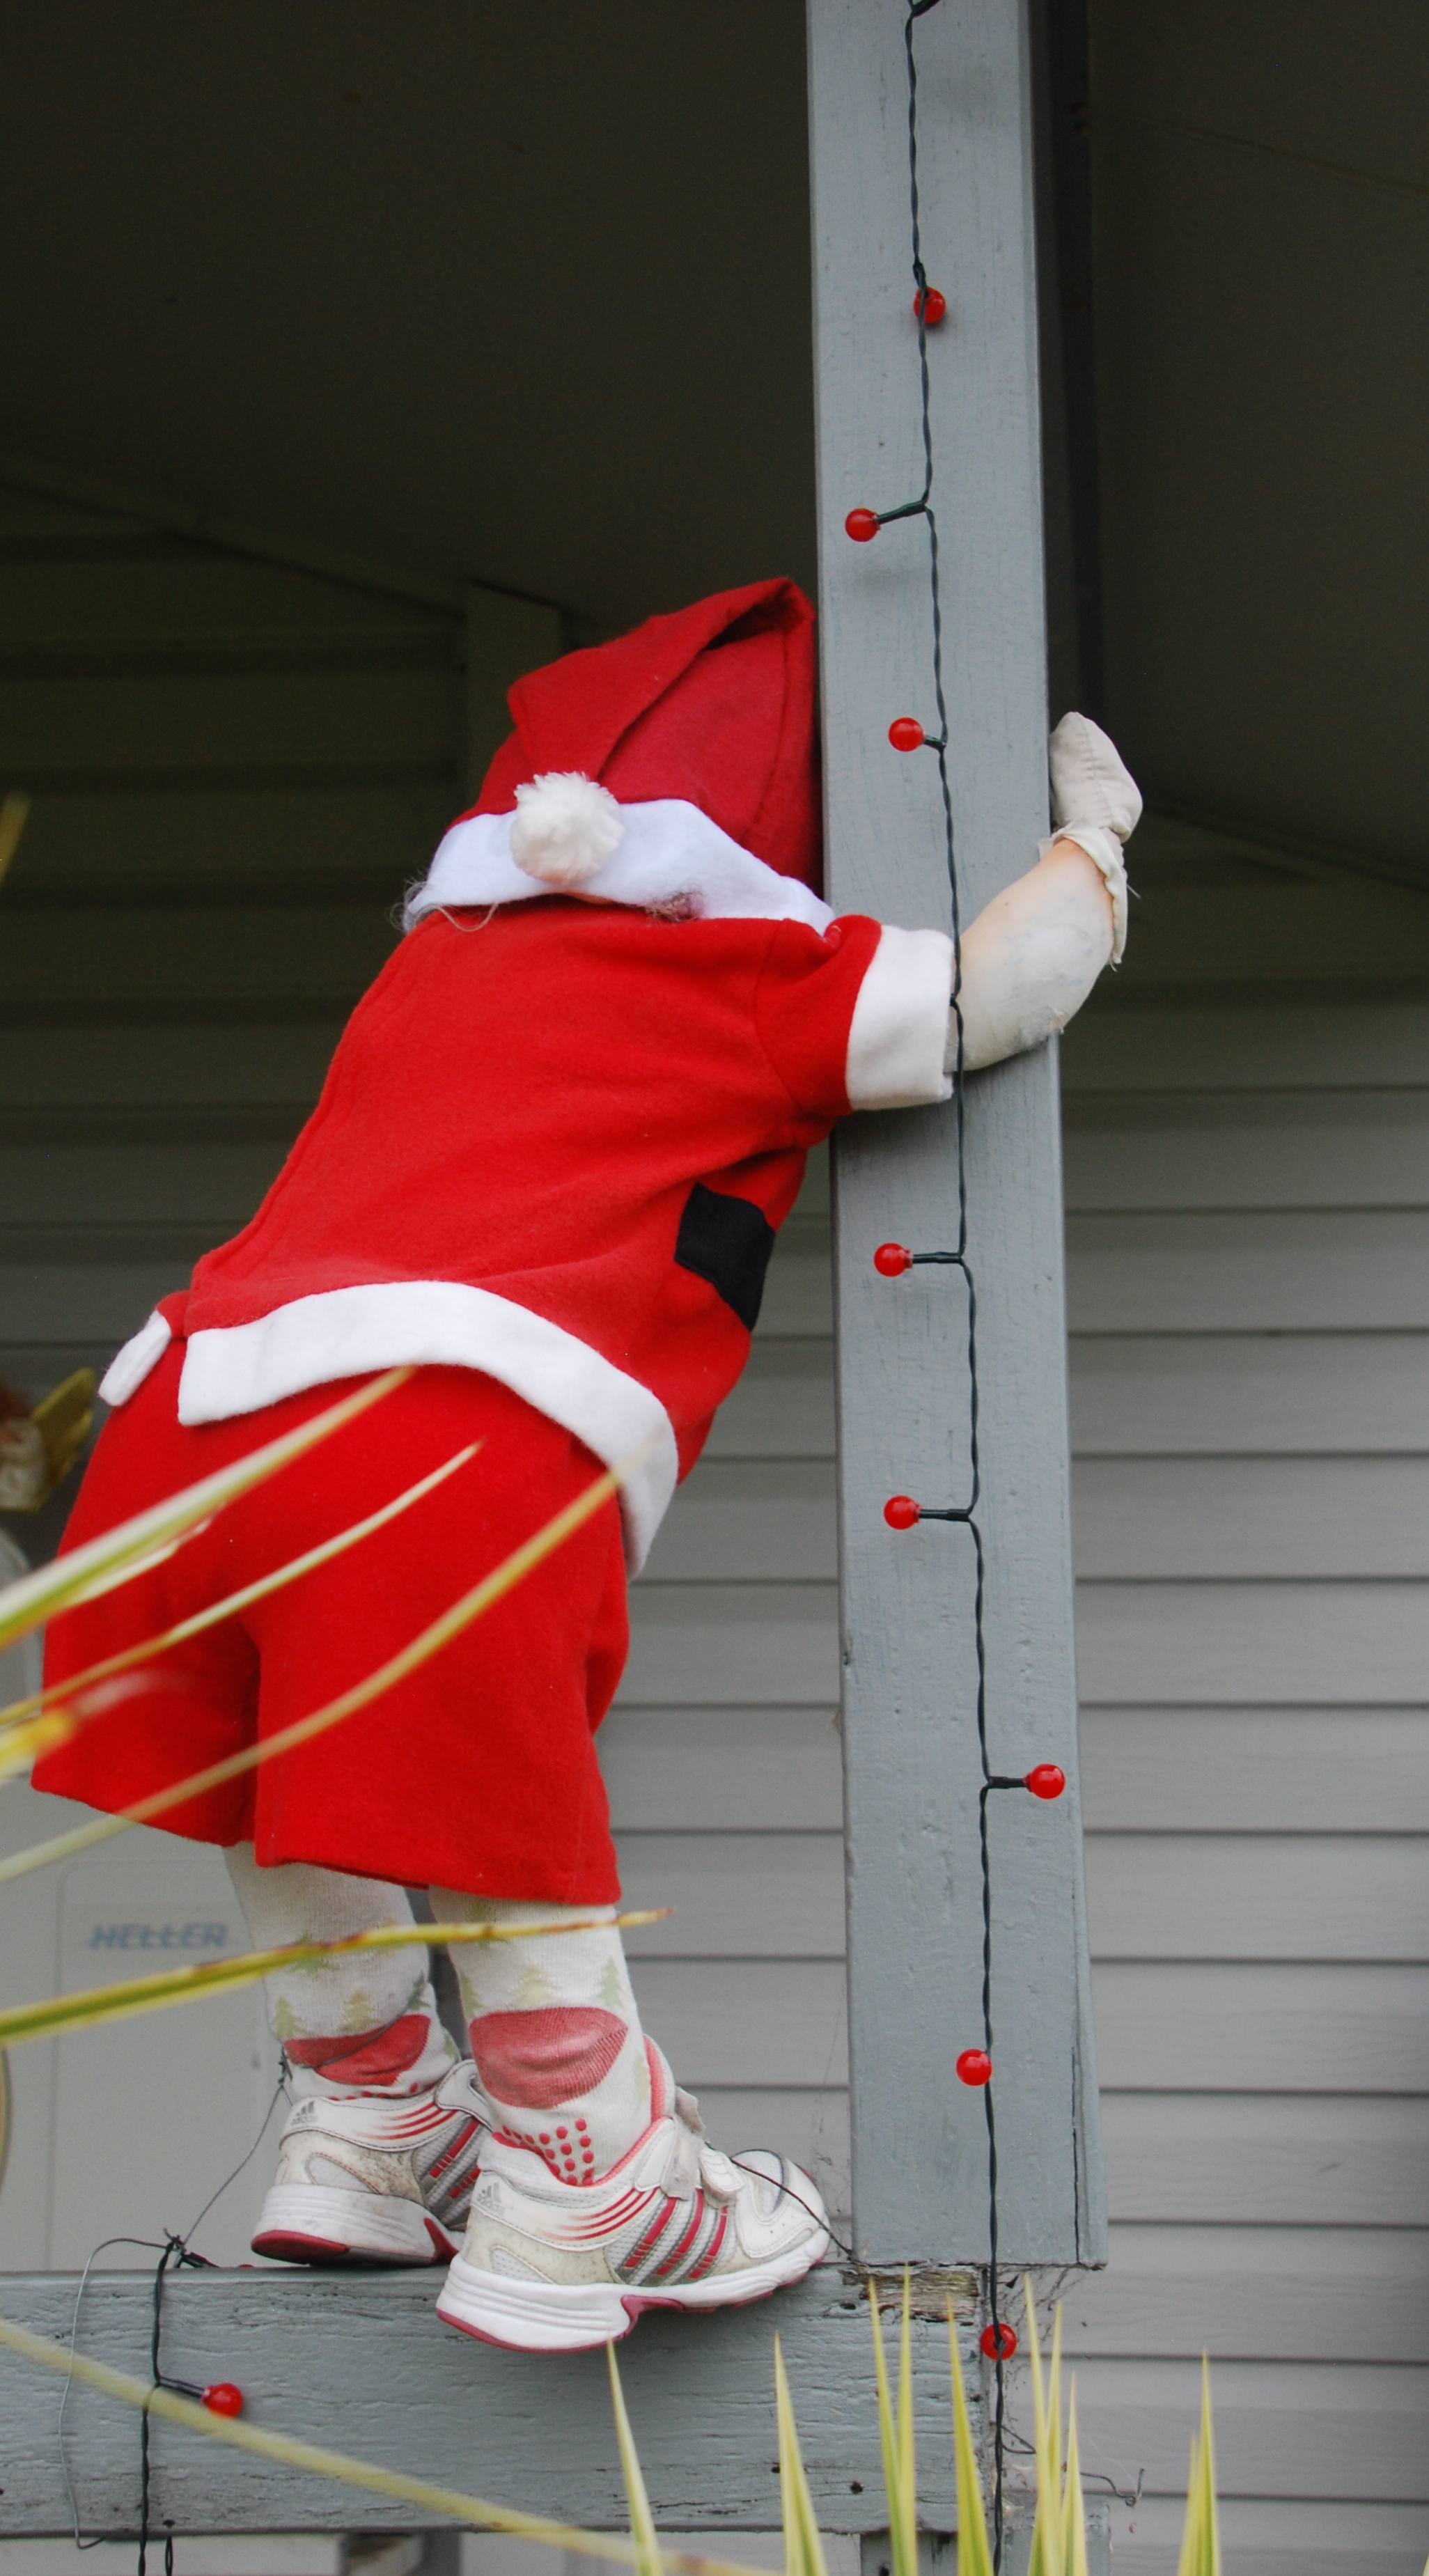 Small Santa, climbing up the verandah post, Summerland Way, NSW.